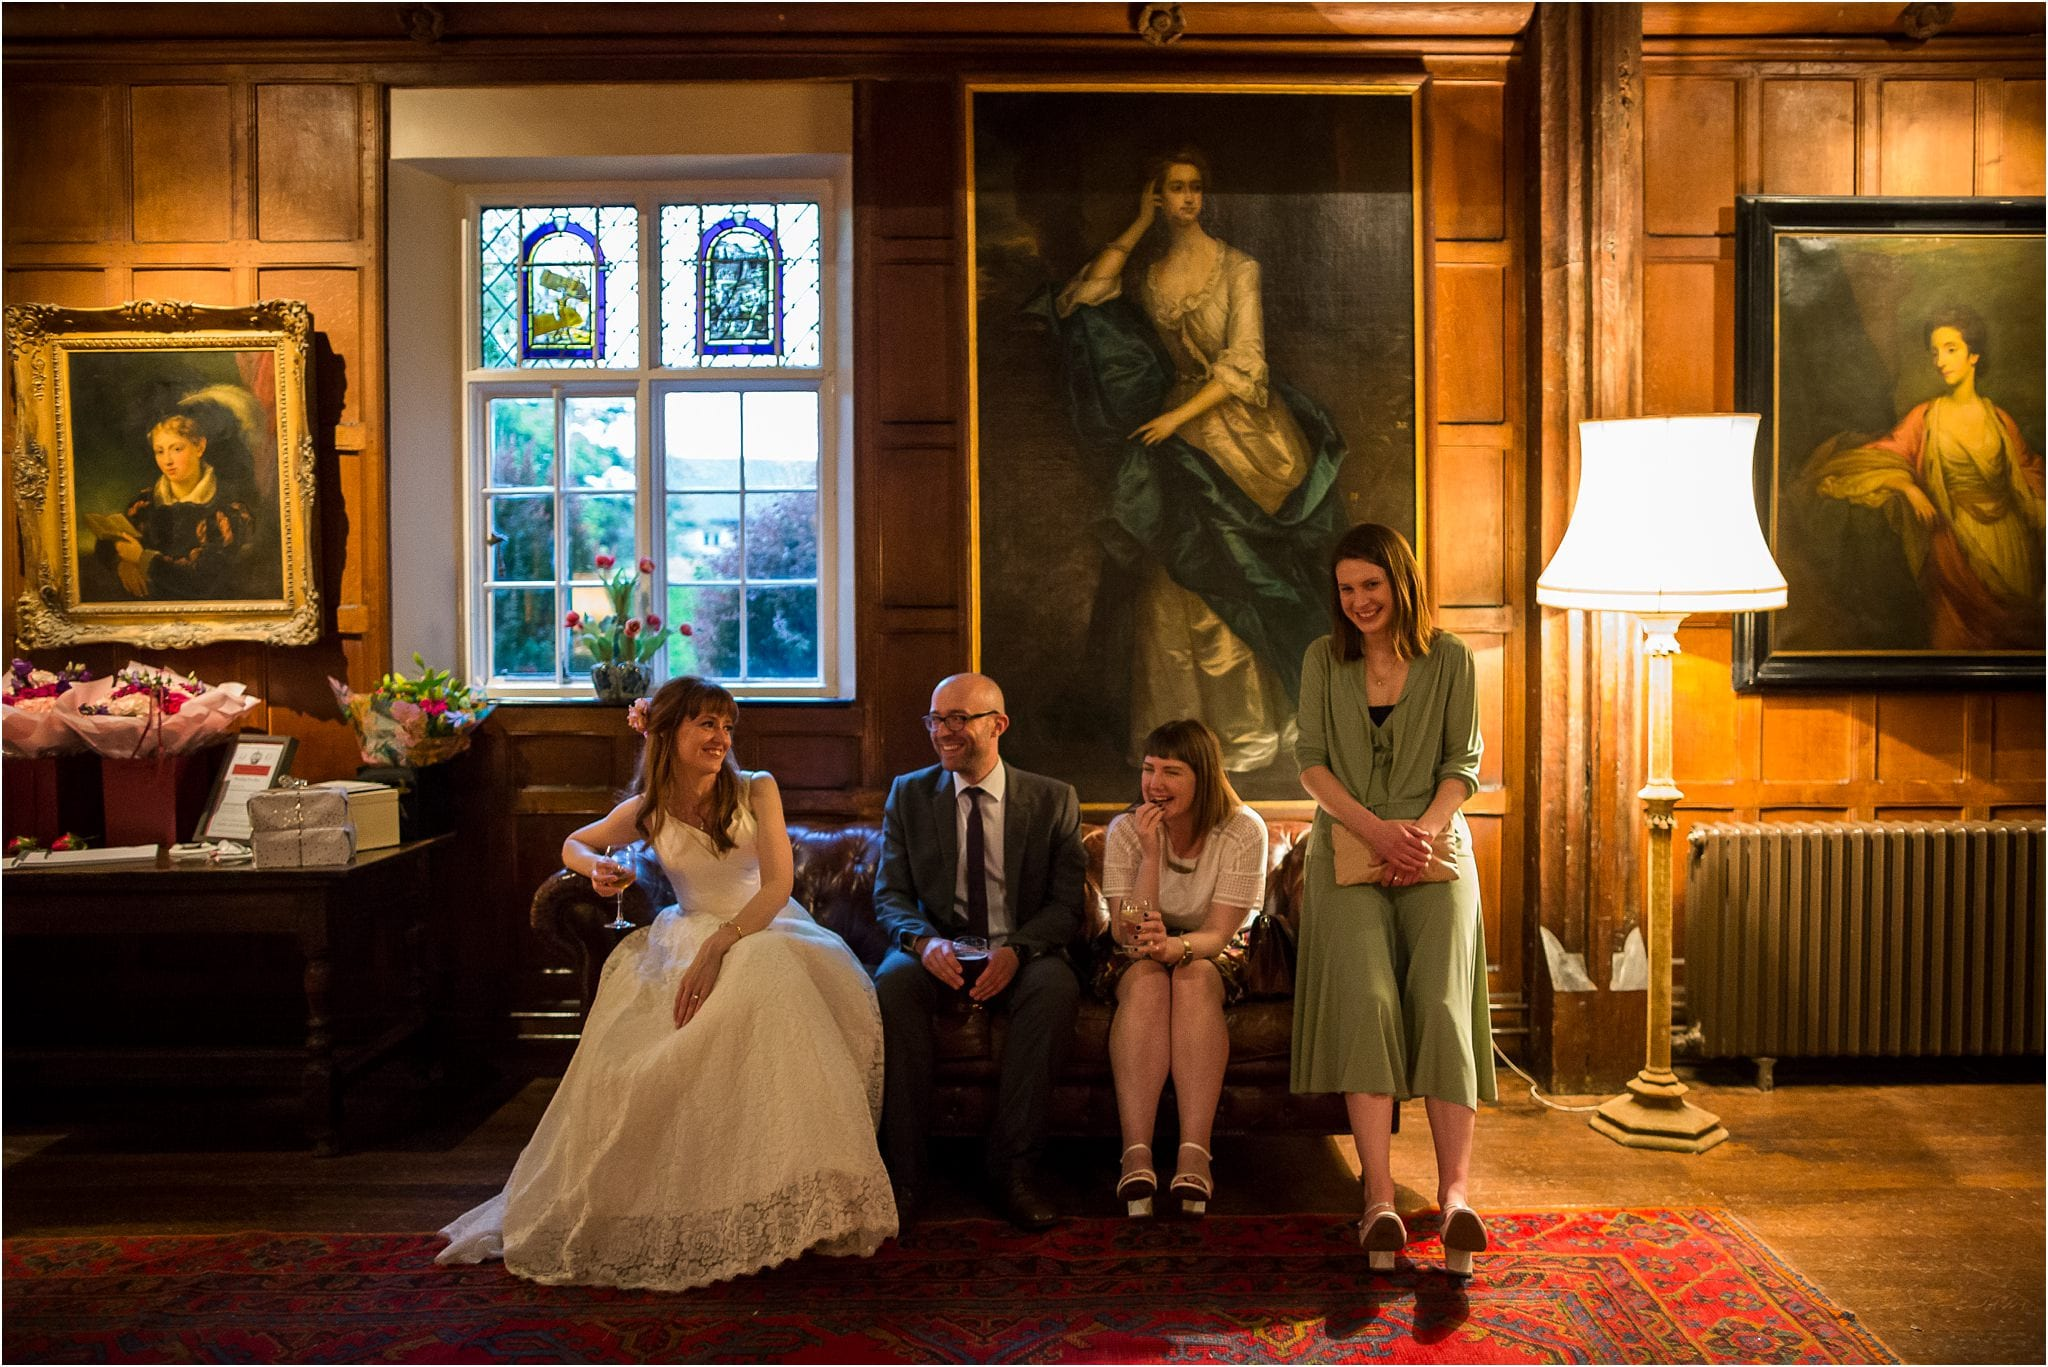 Guests and the bride relaxing on a sofa in front of a large painting in a grand room. Image by S2 Images, Hampden House Wedding Photographer